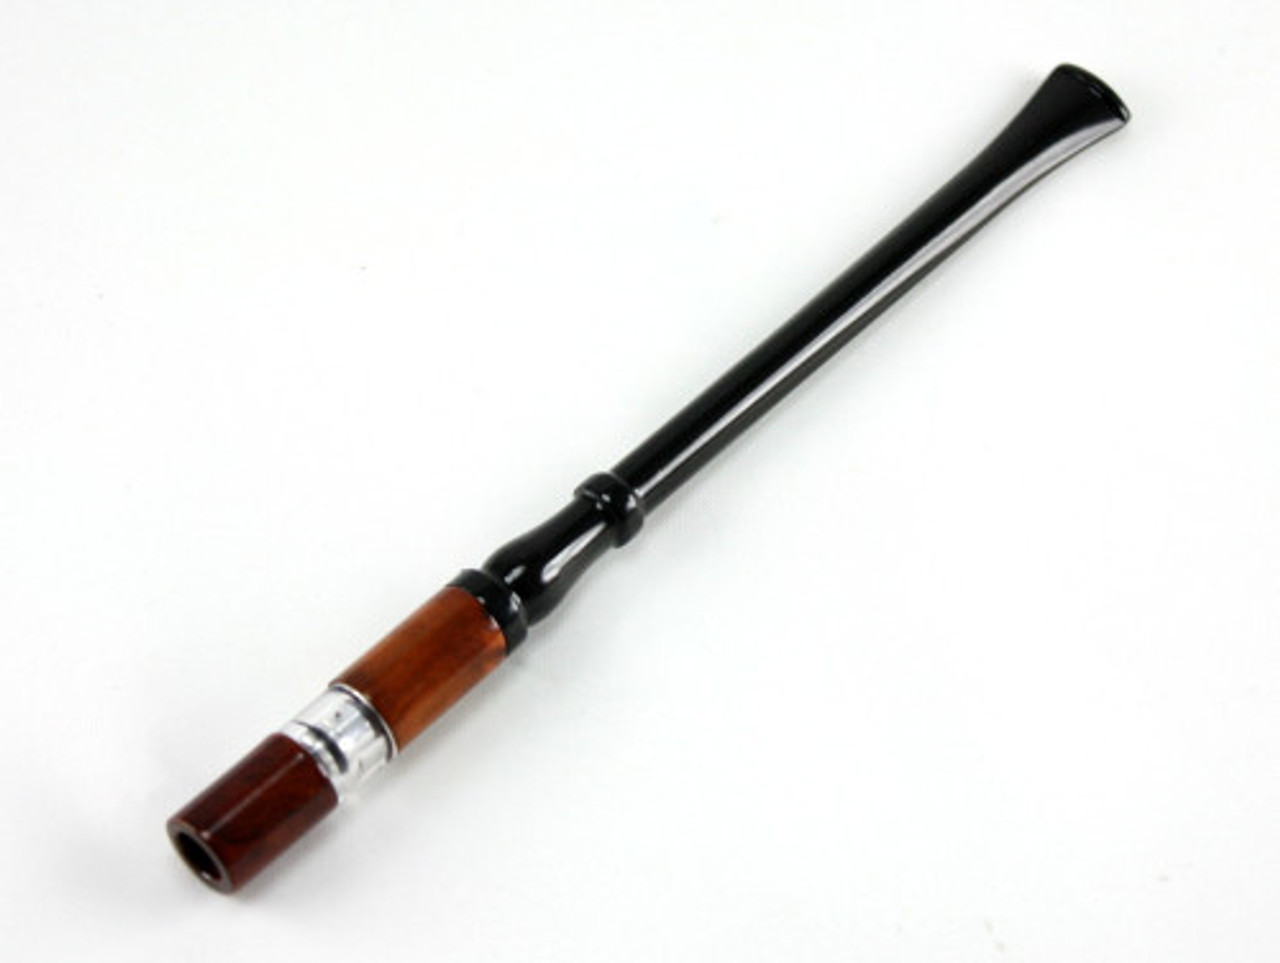 Niko Rosewood Cigarette Holder with Cleanable Filter